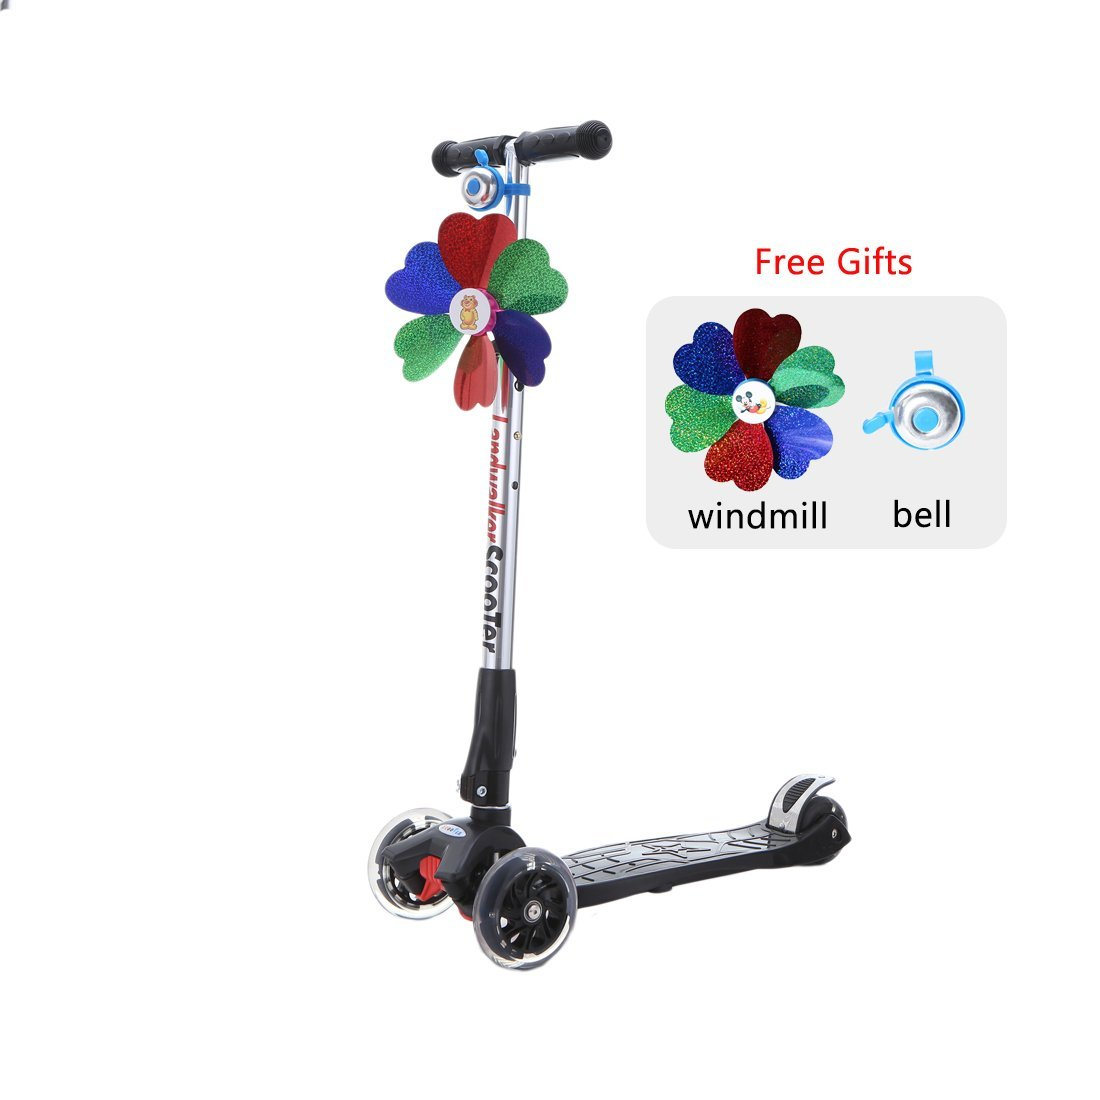 Landwalker Children Scooters Foldable Kick Scooter Adjustable Scooters Nonslip Glider 3-Wheel Scooter with PU LED Light up Wheels(Free Bell)